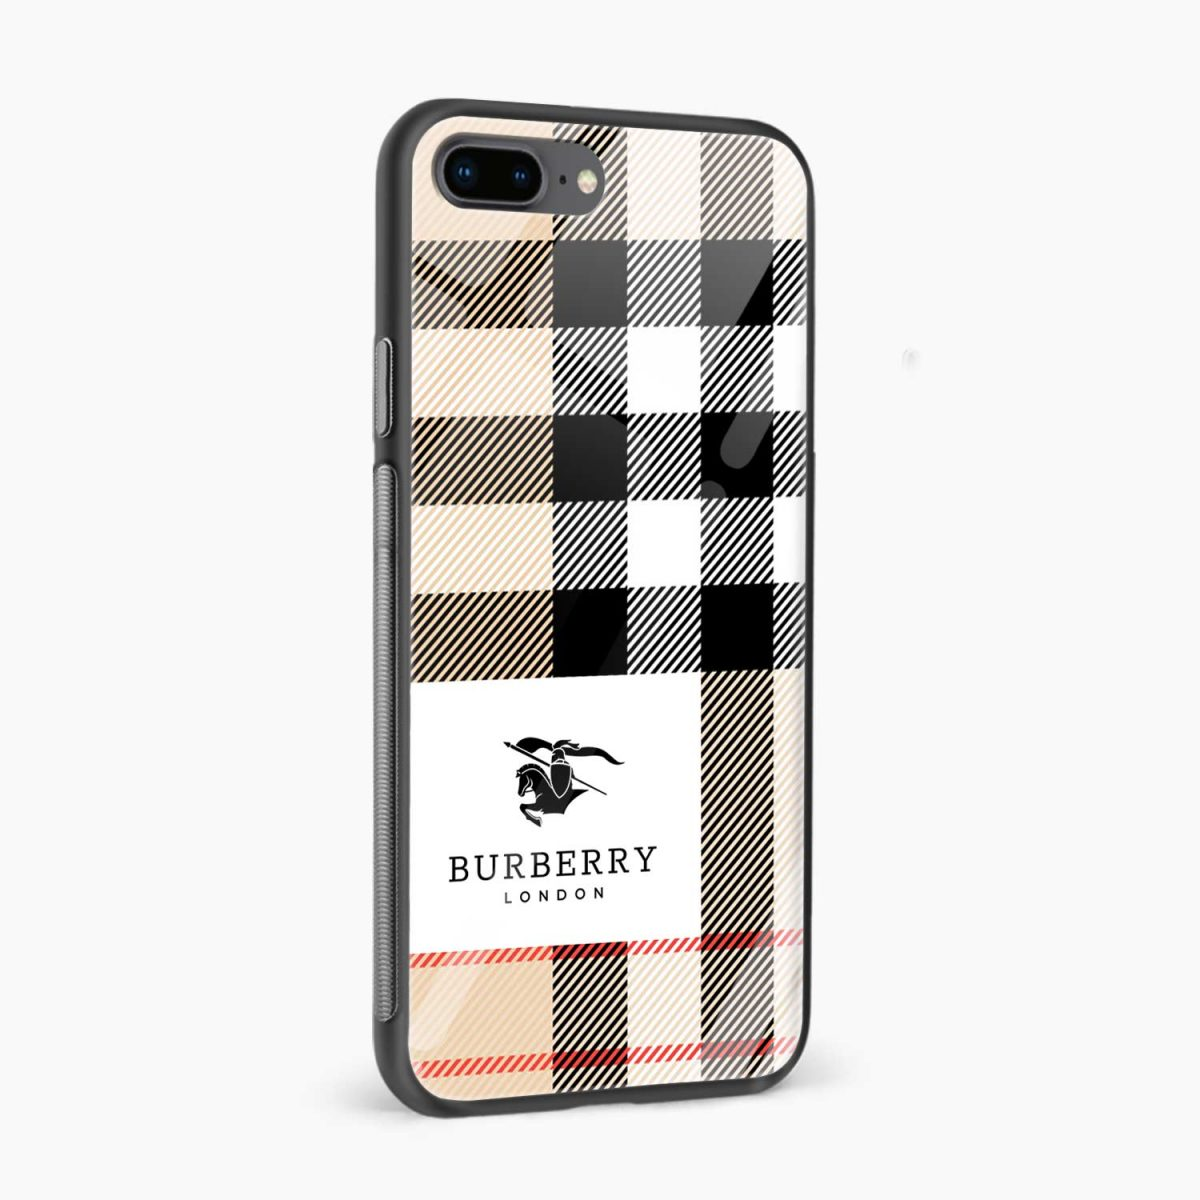 burberry cross lines pattern side view apple iphone 7 8 plus back cover